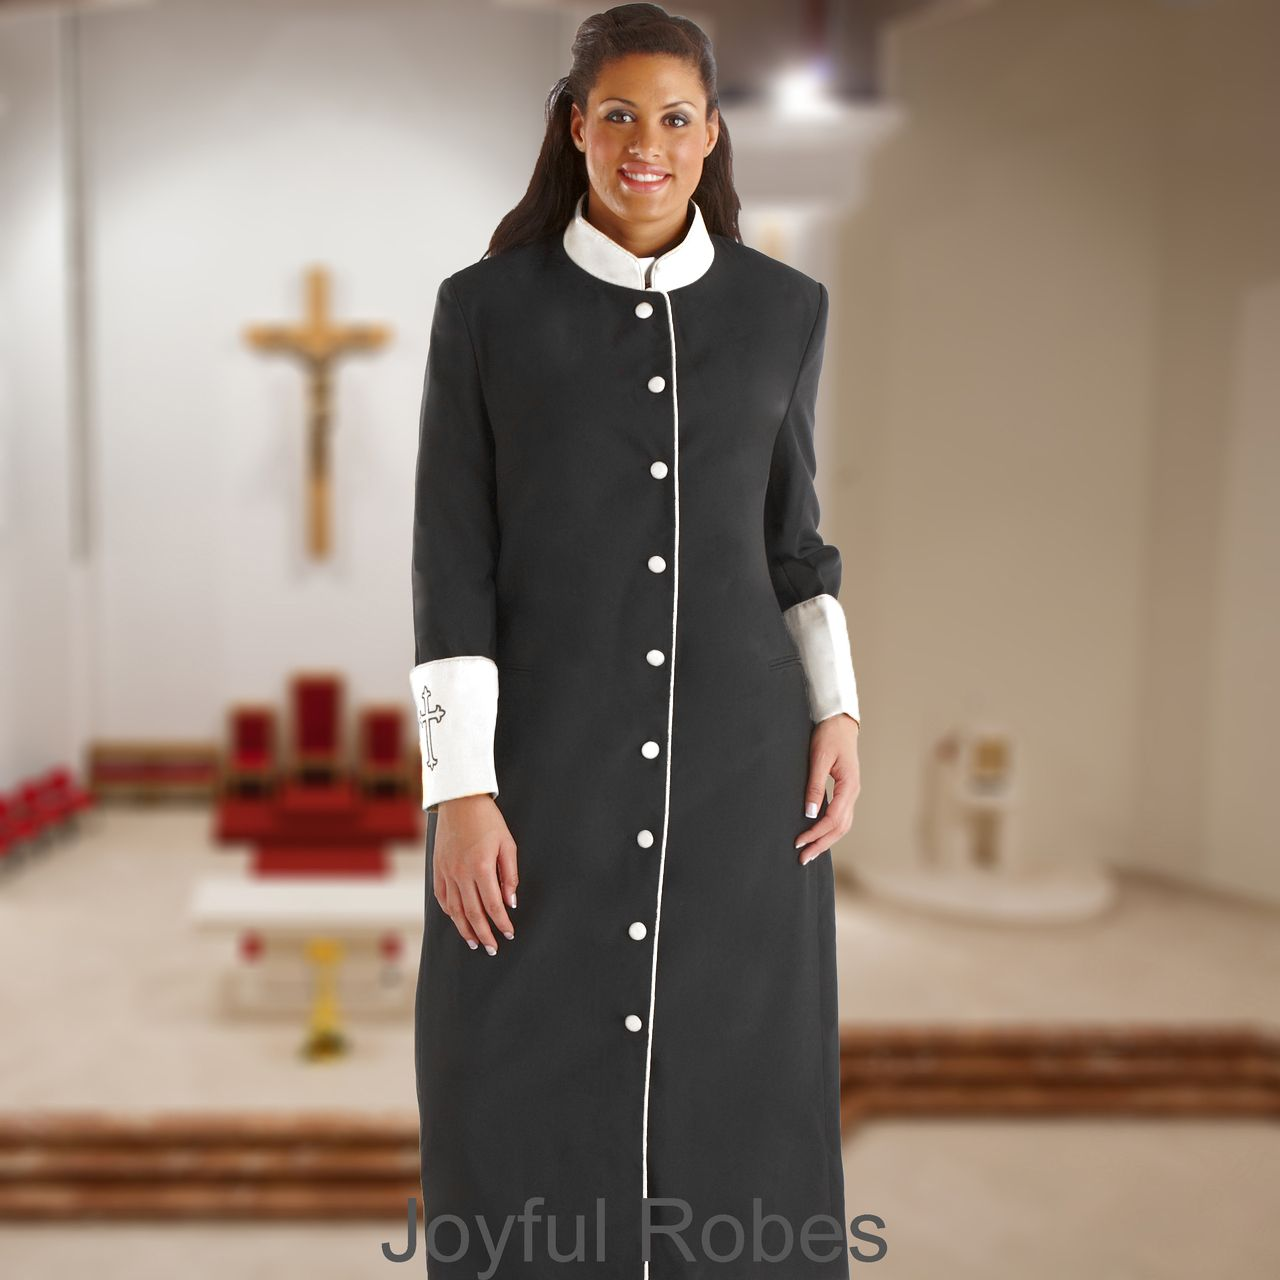 305 W. Women's Clergy/Pastor Robe - Black/White Cuff